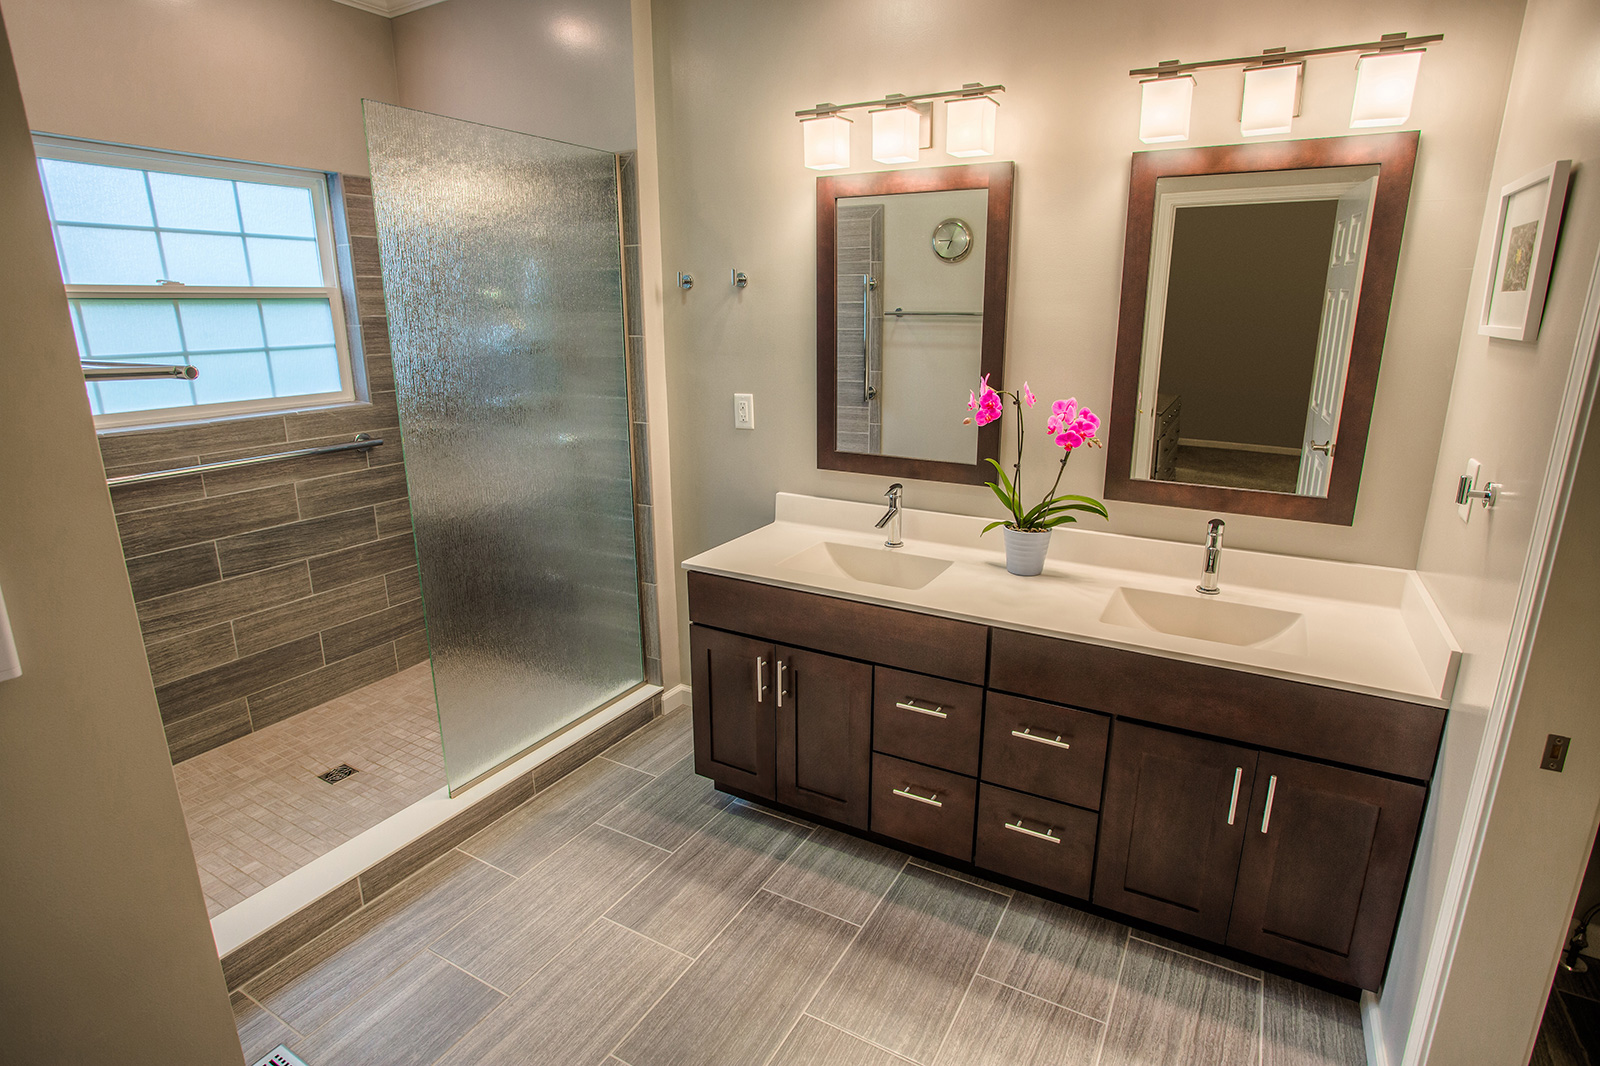 West lafayette contemporary master bathroom remodel - Pictures of remodeled small bathrooms ...